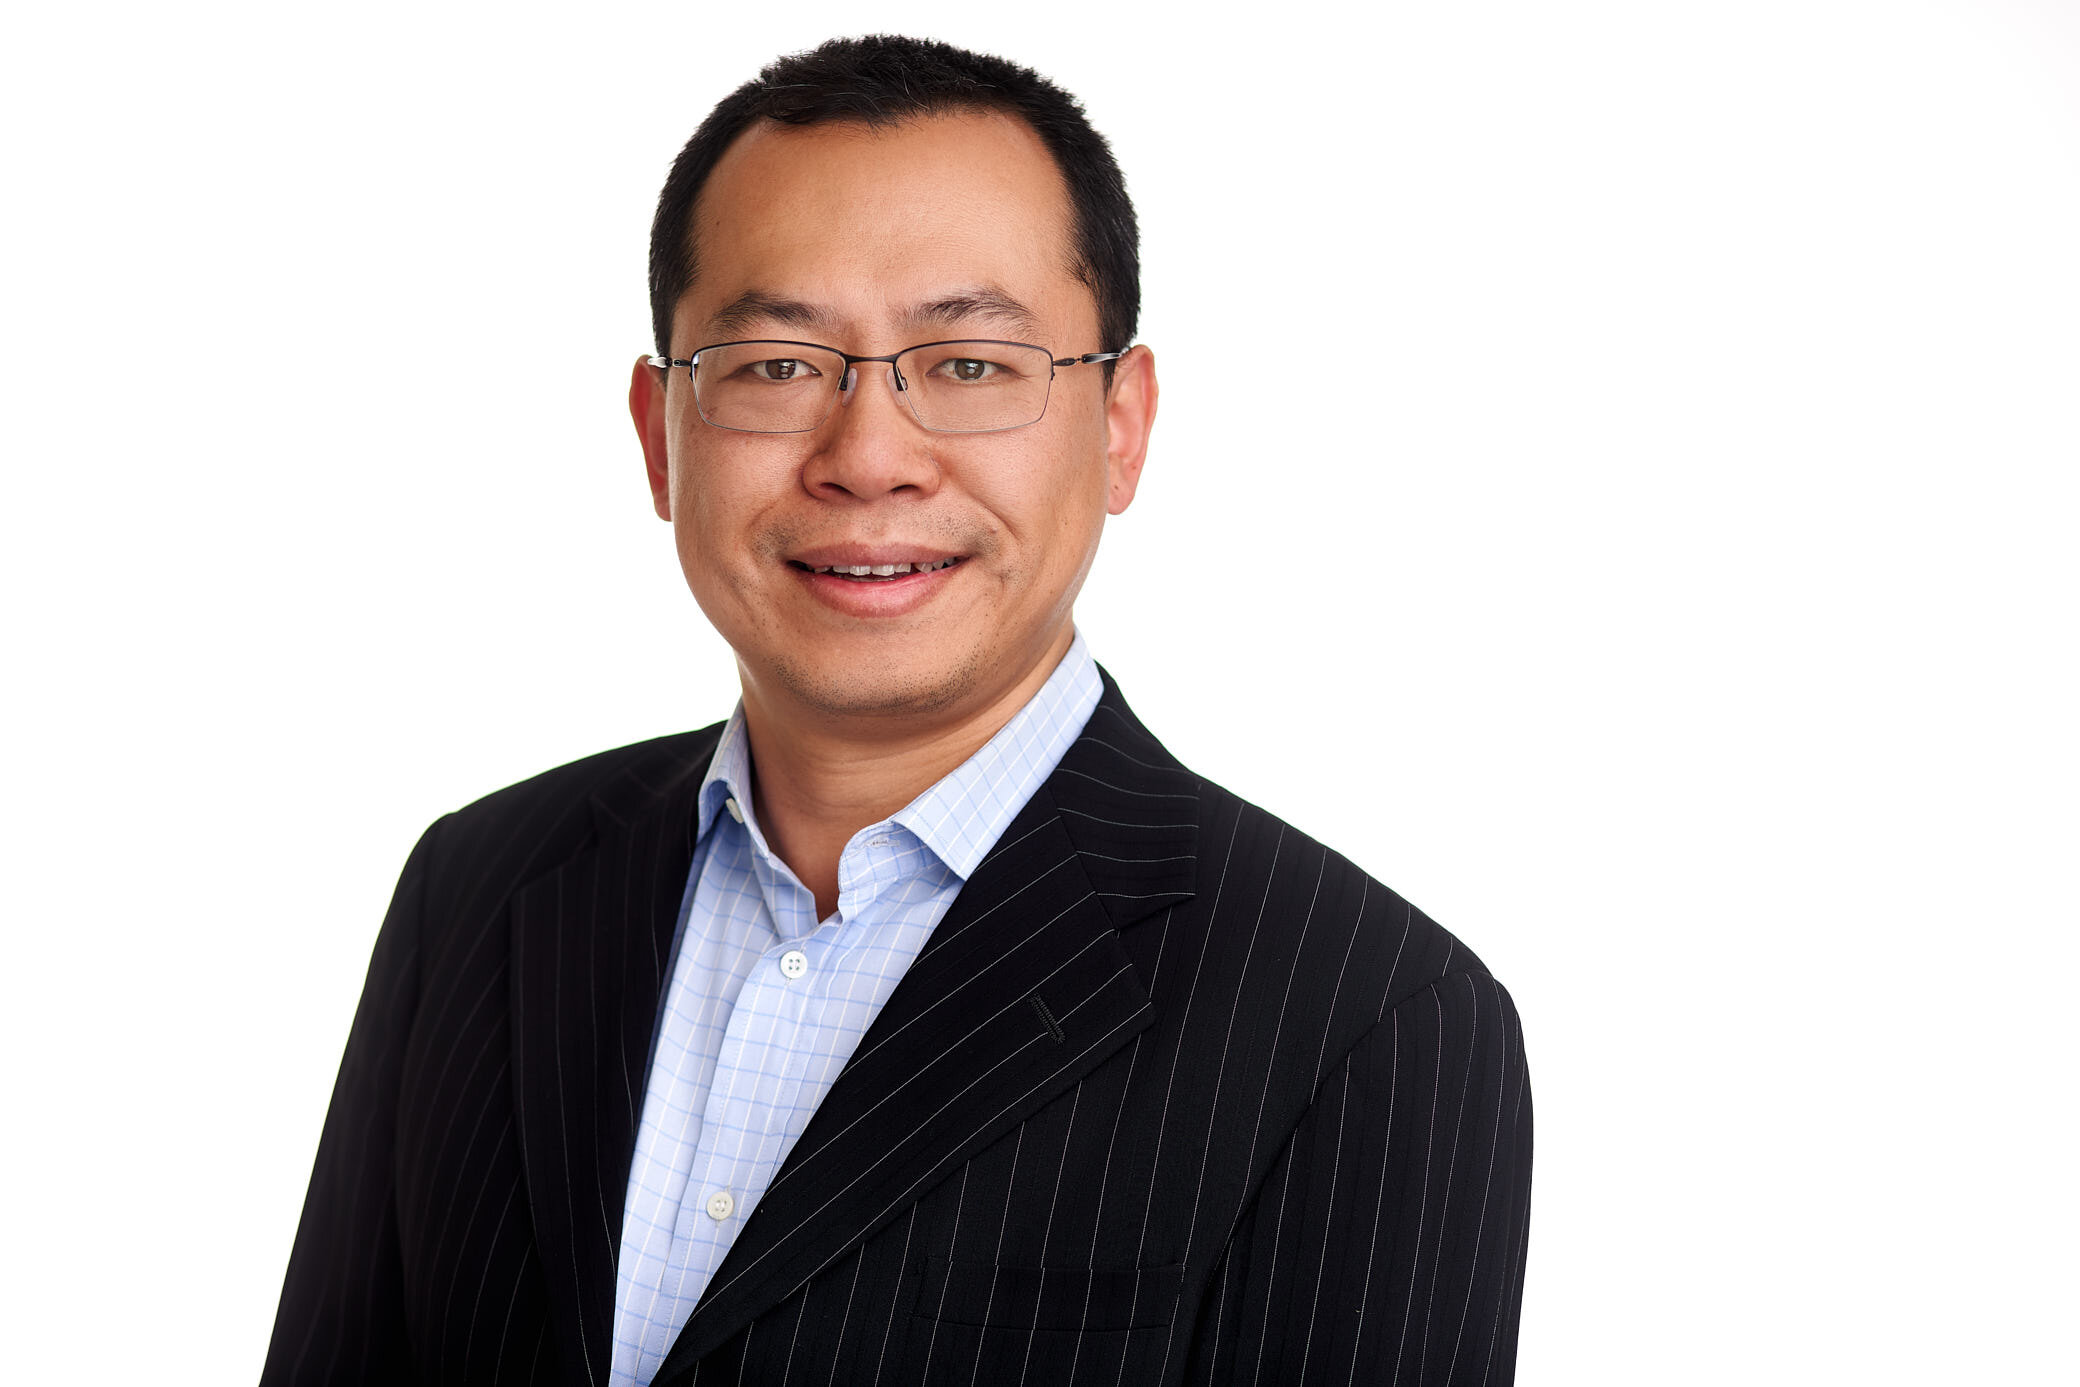 Arnold Hu - Advisor | Project Advisory ServicesArnold is an experienced advisor in project, procurement and contract management from roles in the manufacturing, accommodation and tourism sectors. This background includes managing the development of a fixed-wing aircraft manufacturing facility and negotiating knowledge transfer from Australian industry to support Chinese infrastructure investment.Arnold also brings expertise in the analysis, design and management of Information Systems with his Masters thesis from the London School of Economics examining 'The Digital Divide in China'.